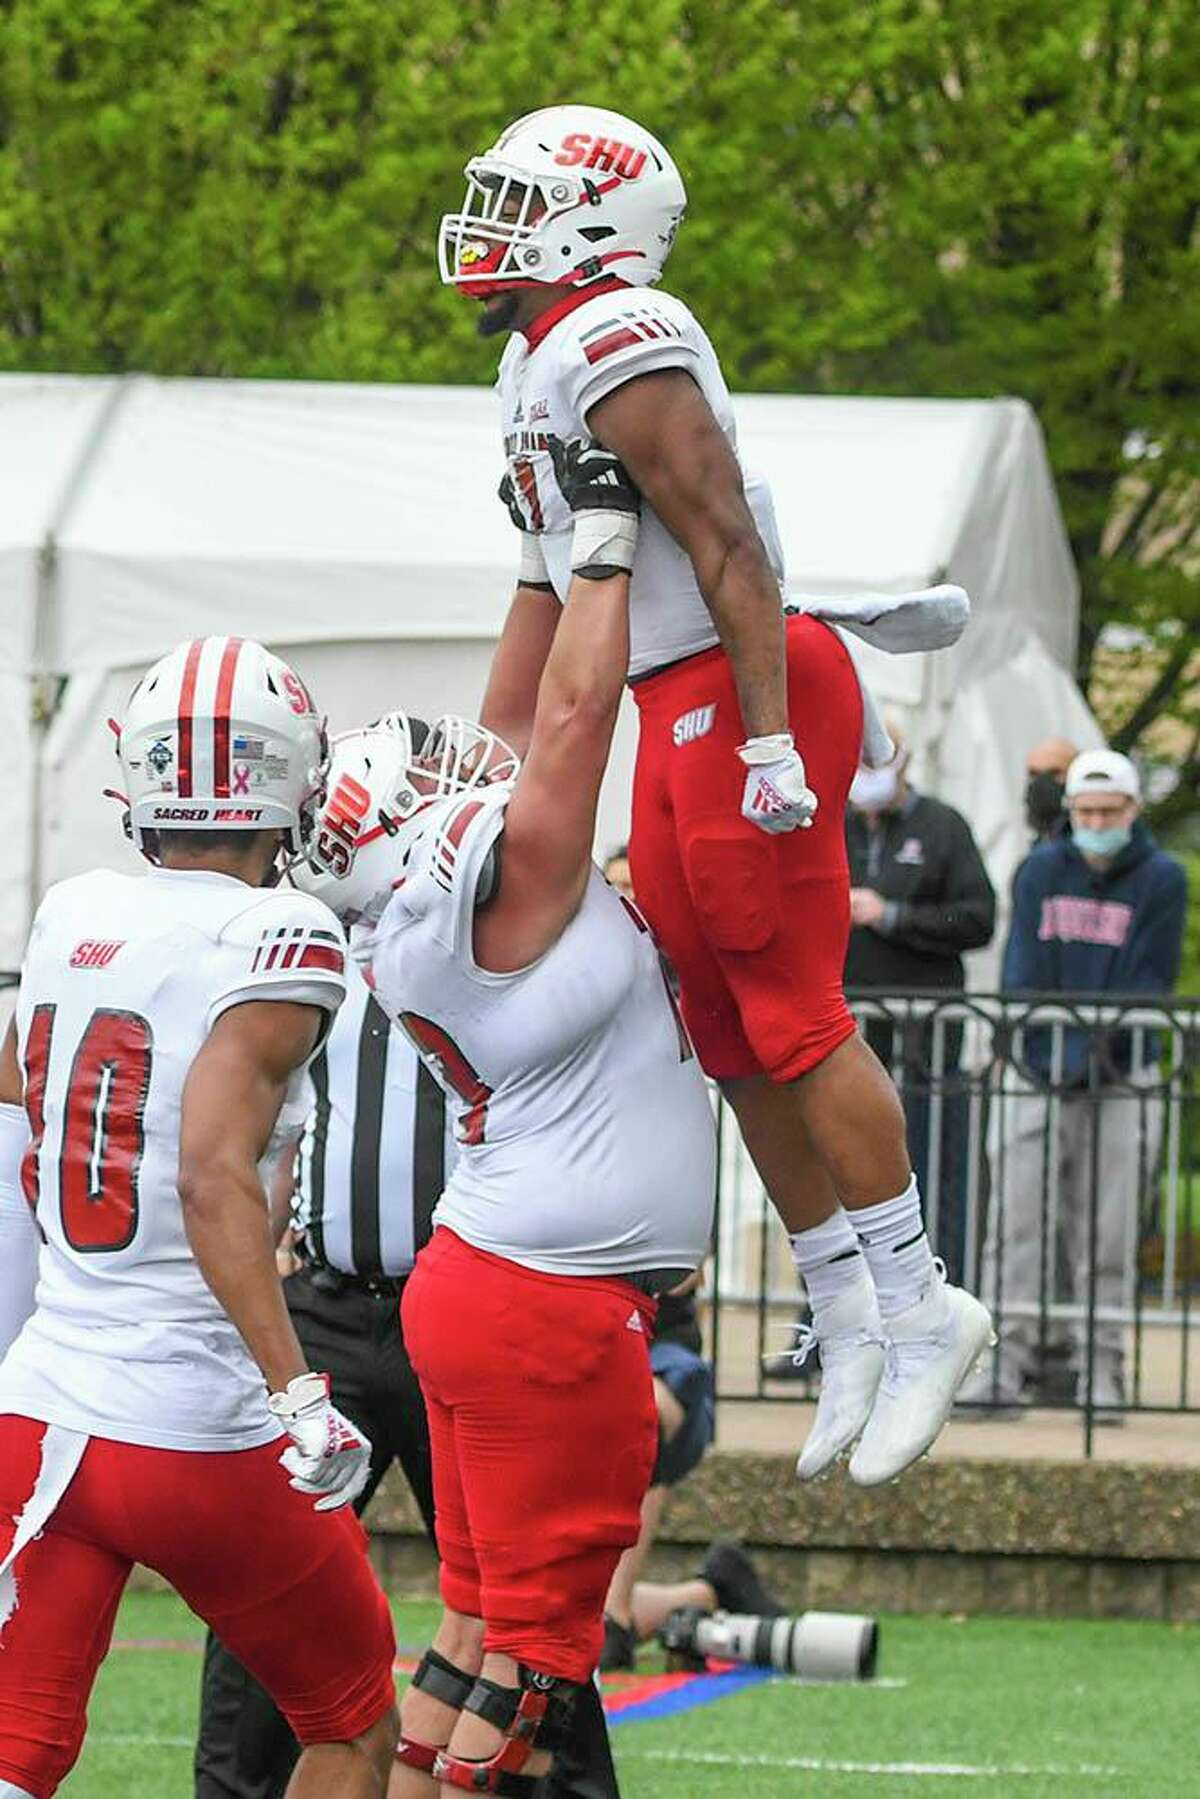 Sacred Heart's Julius Chestnut celebrates during Sunday's win in the NEC championship game against Duquesne.